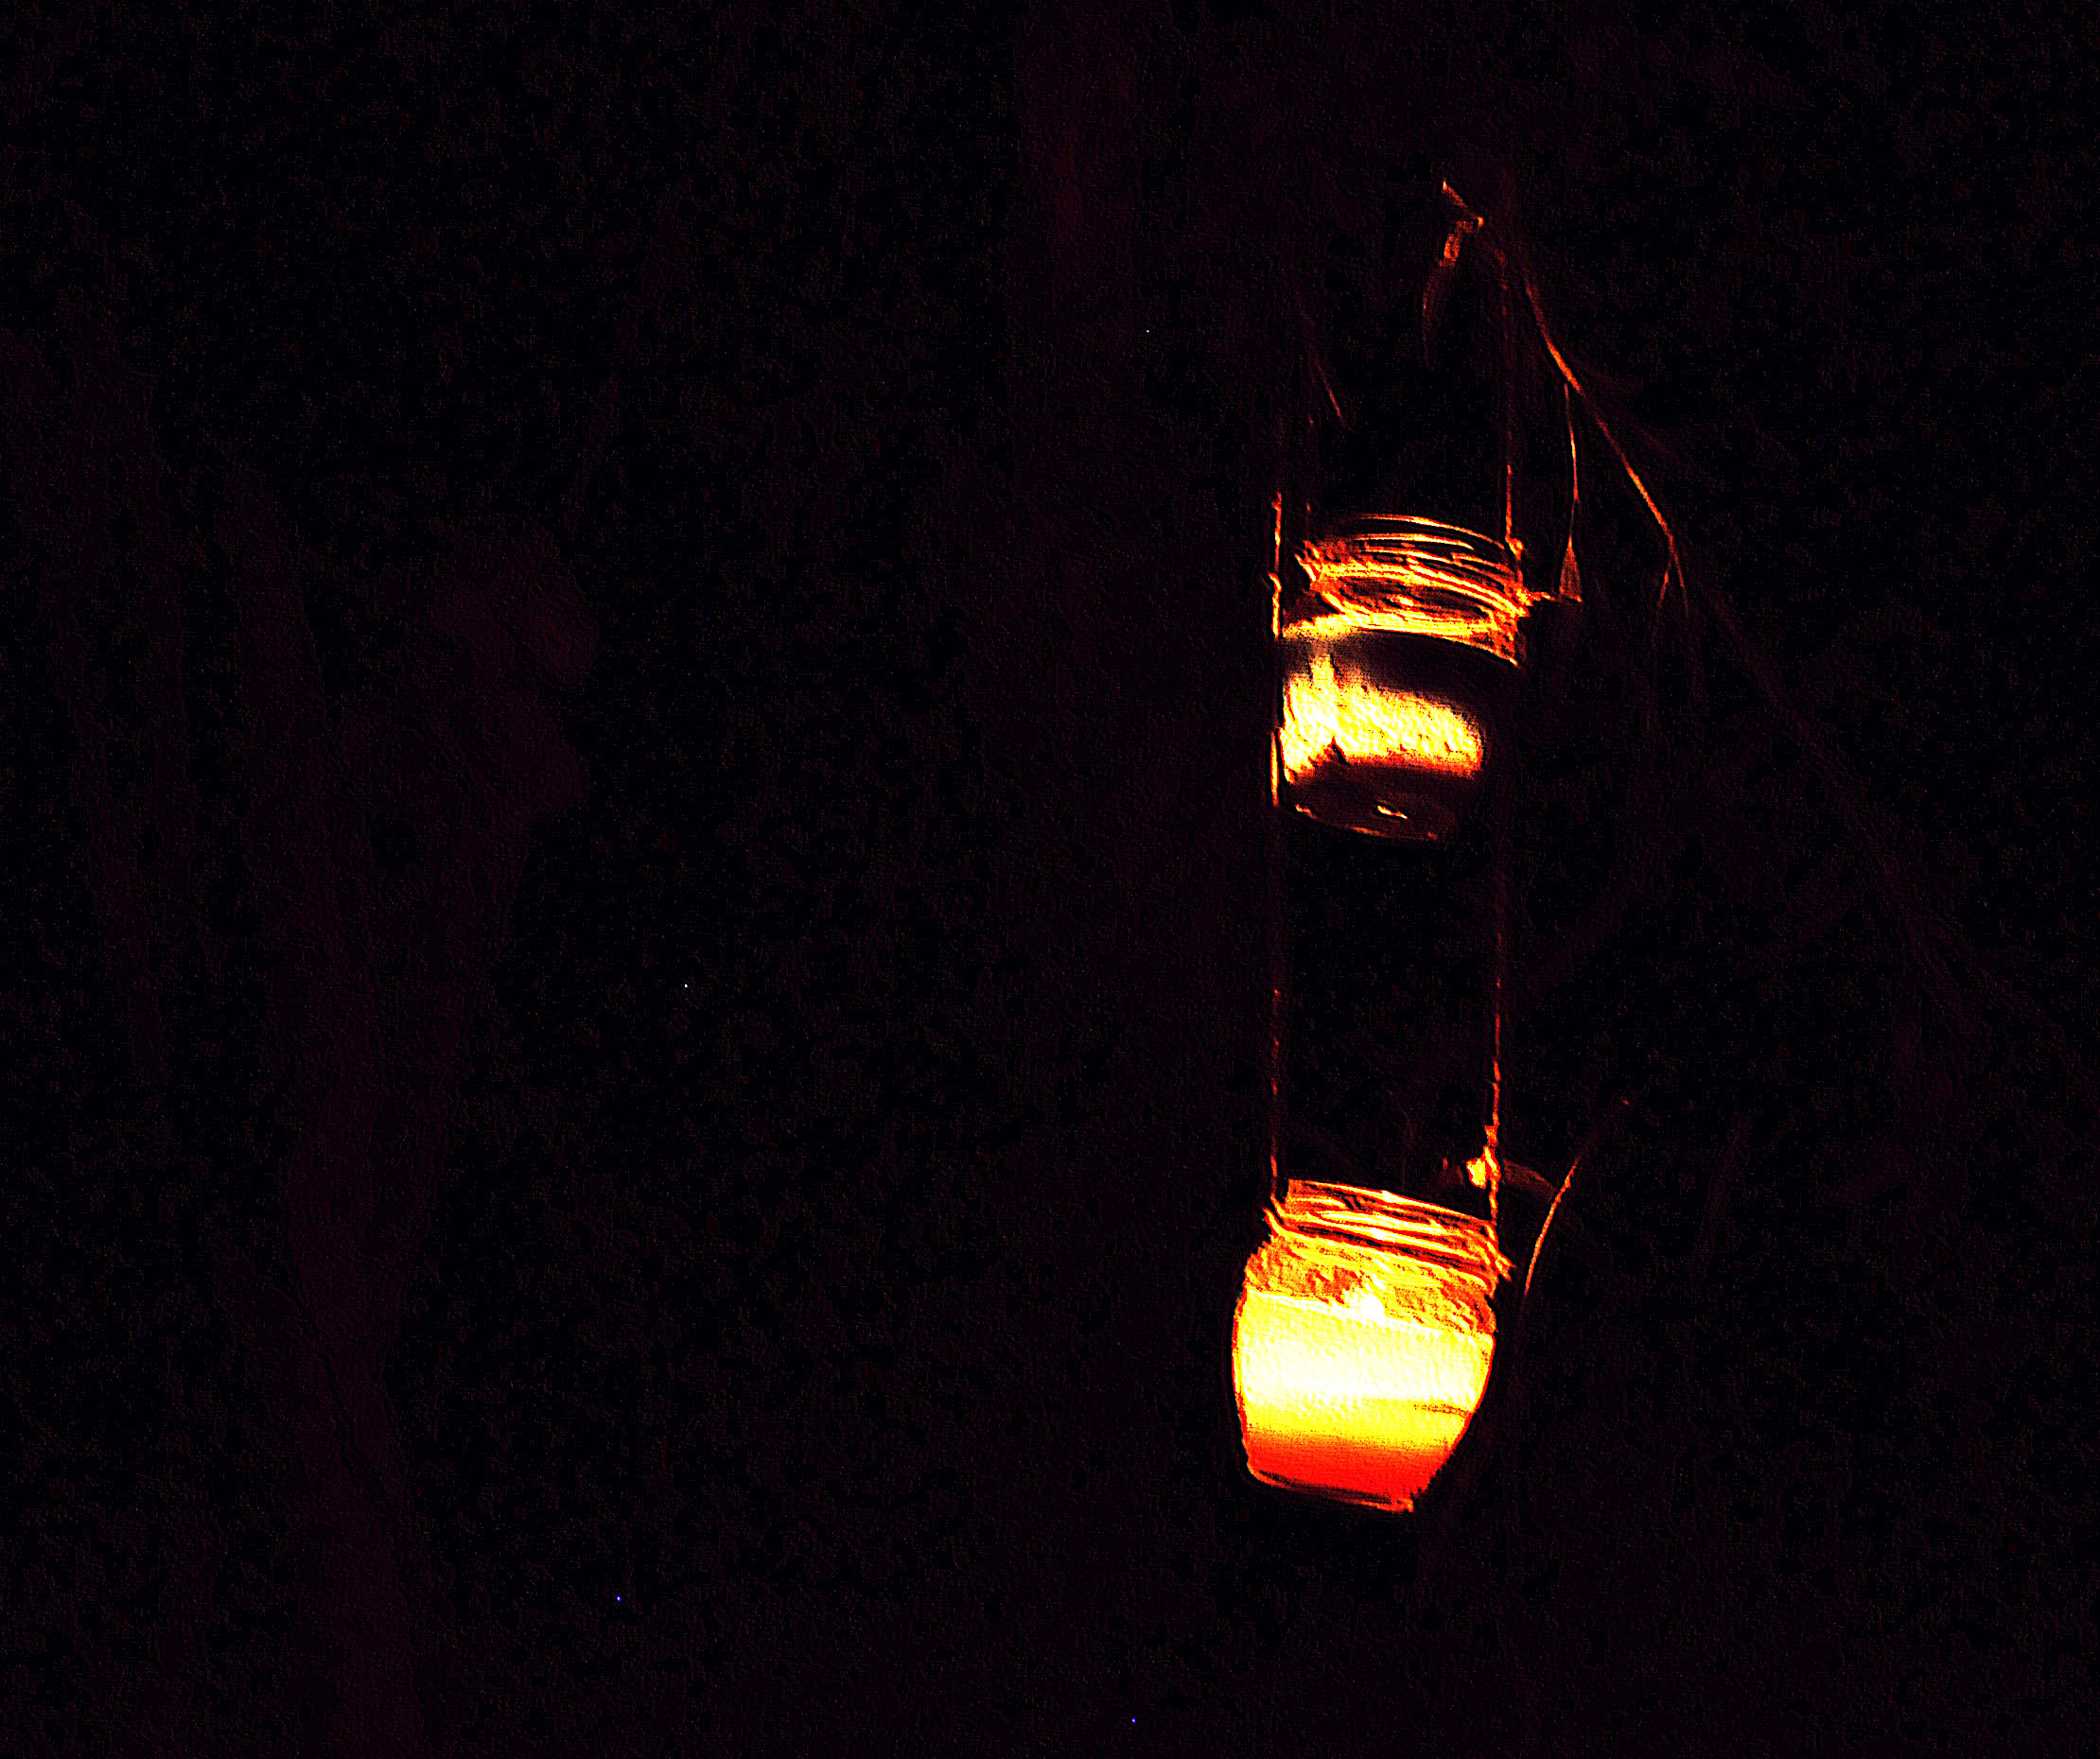 8_candles-in-the-night